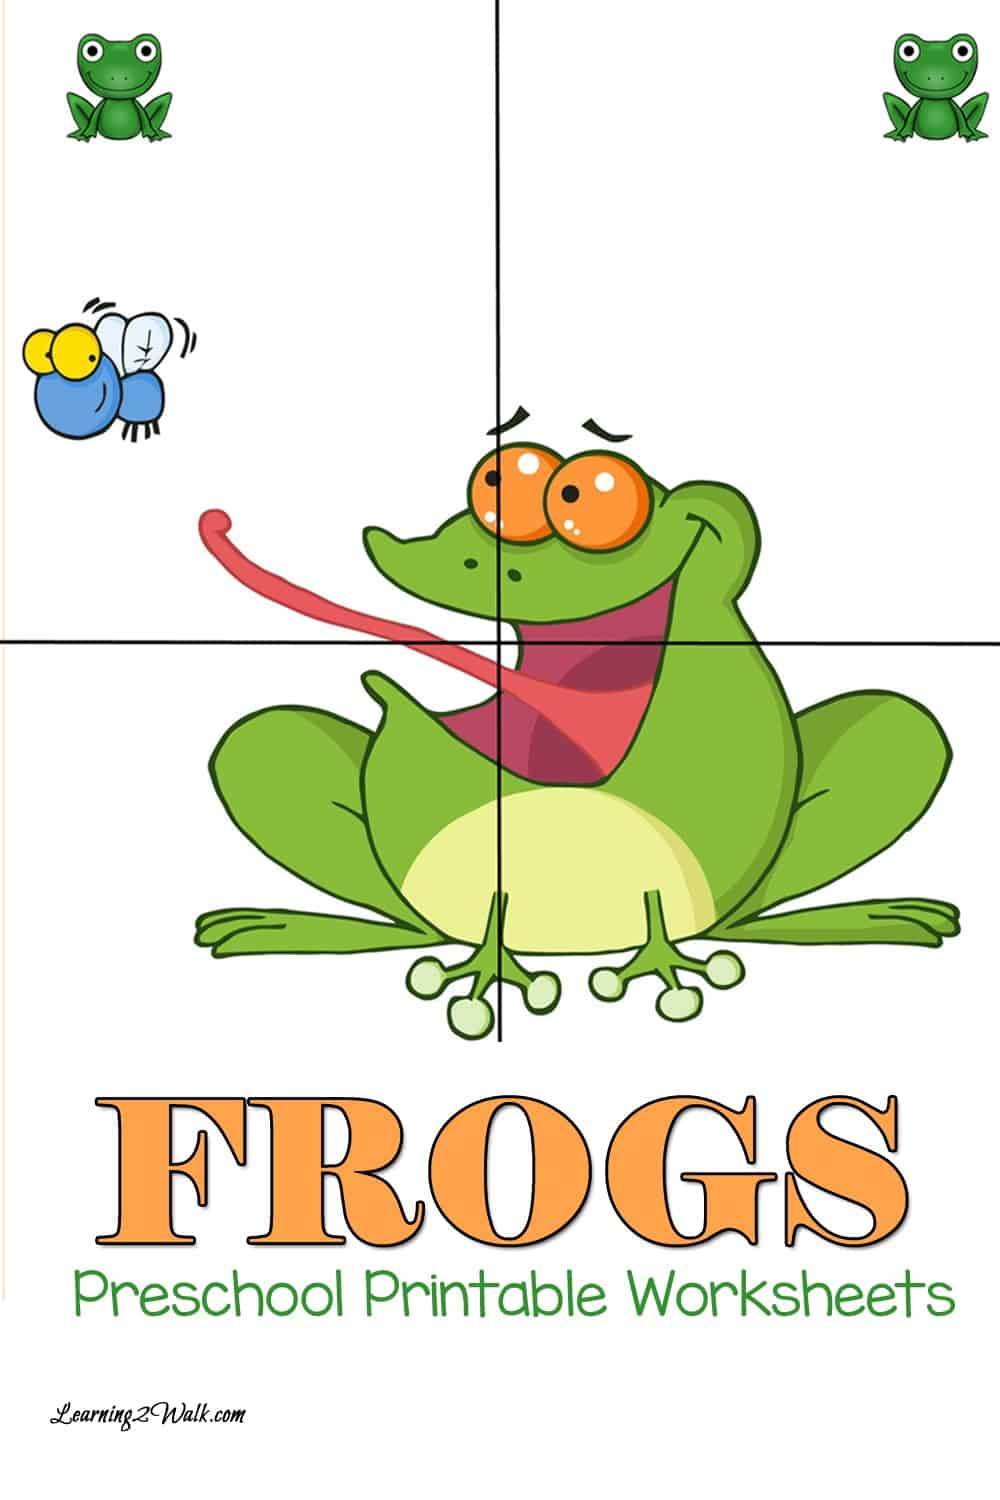 Try these free frogs preschool printable worksheets that include letter writing as well as tracing pages.